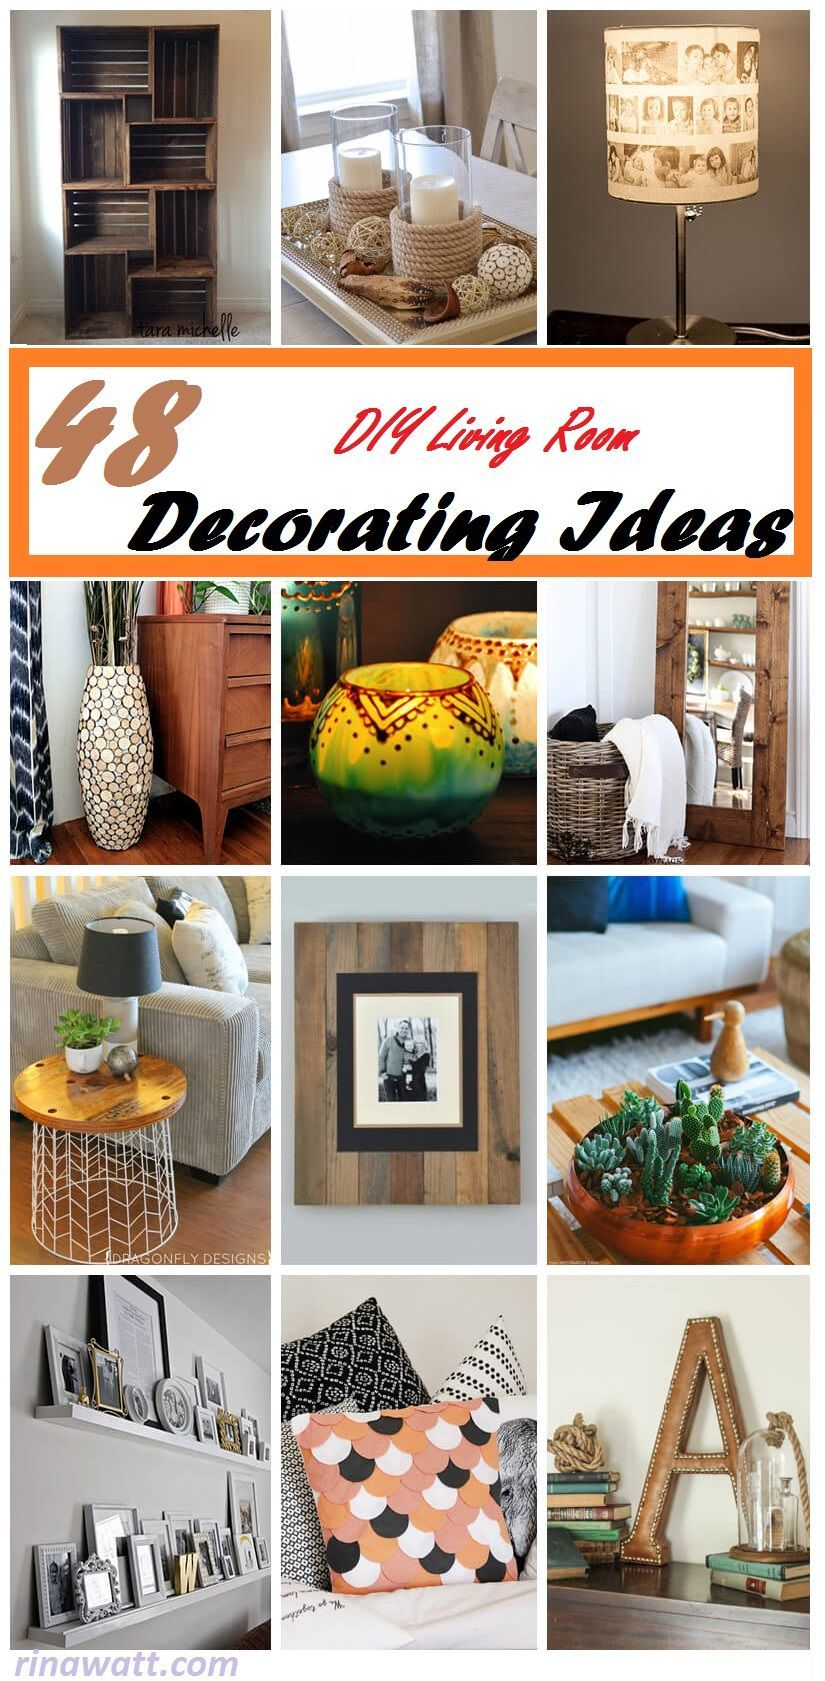 45 Beautiful Diy Living Room Decorating Ideas For A Cheap And Easy Remodel 1 Four Crate Diy Living Room Decor Living Room Decor On A Budget Living Room Diy